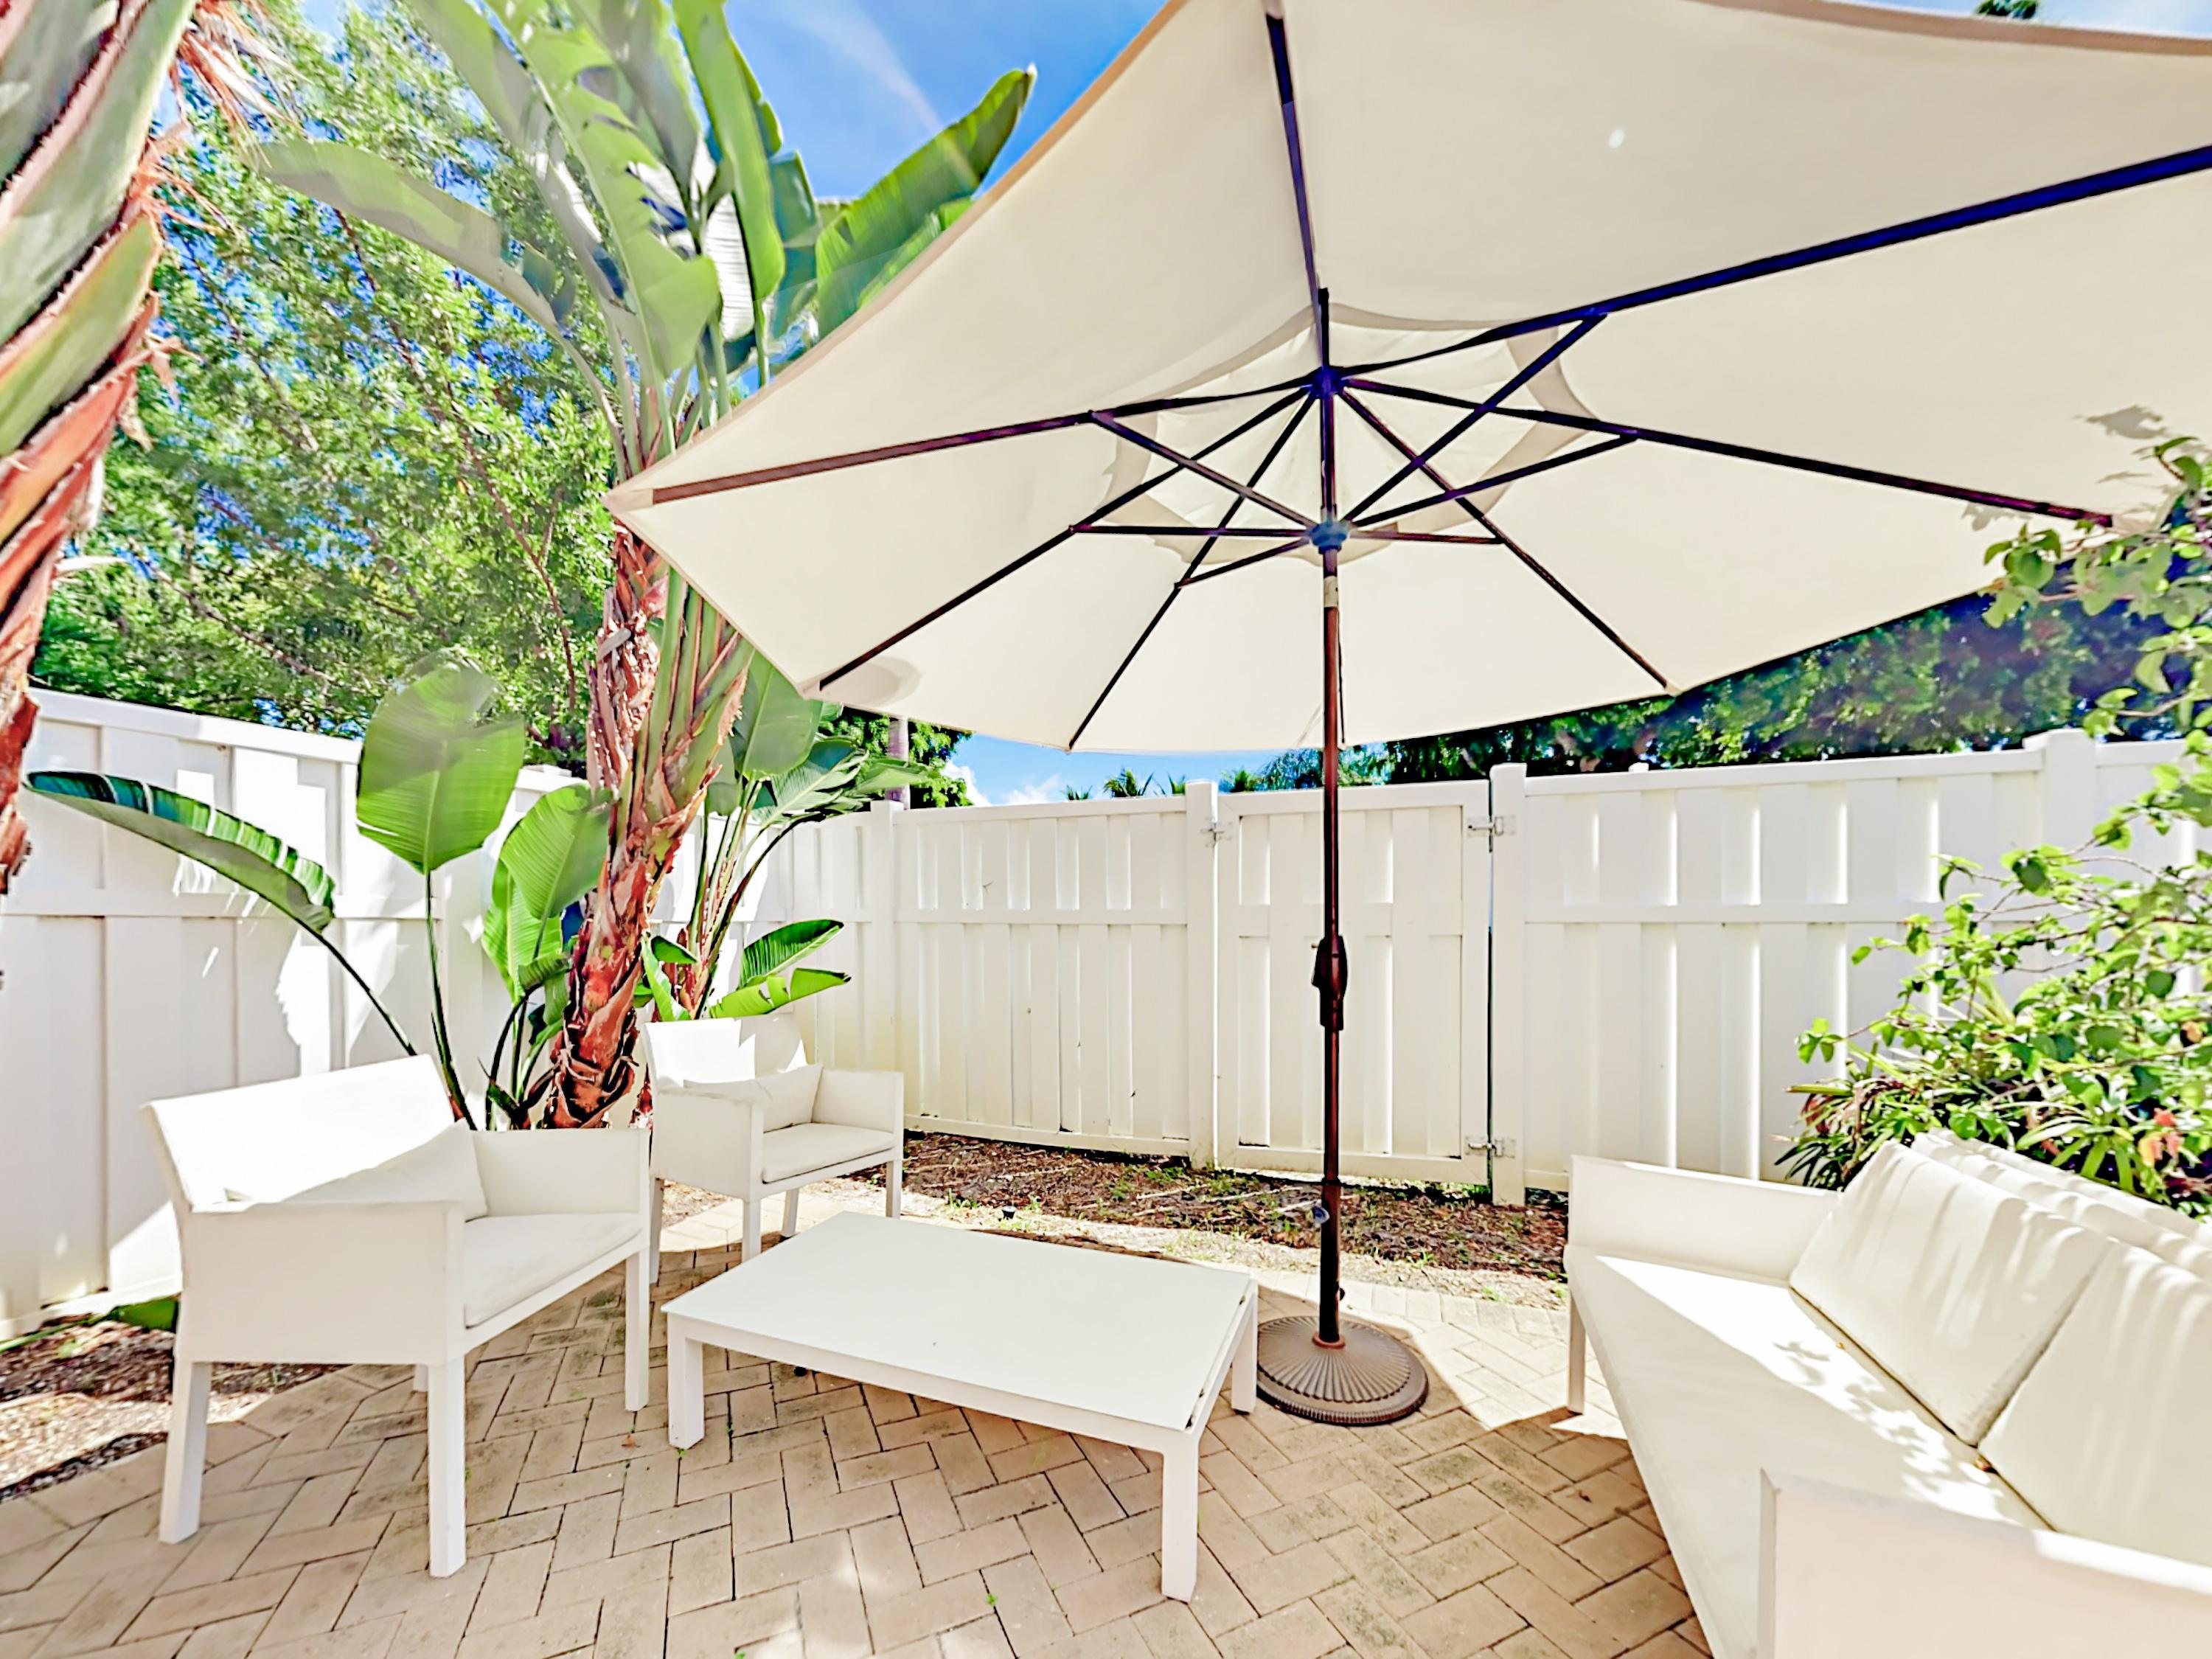 Enjoy cool drinks and conversation underneath a shady patio umbrella.